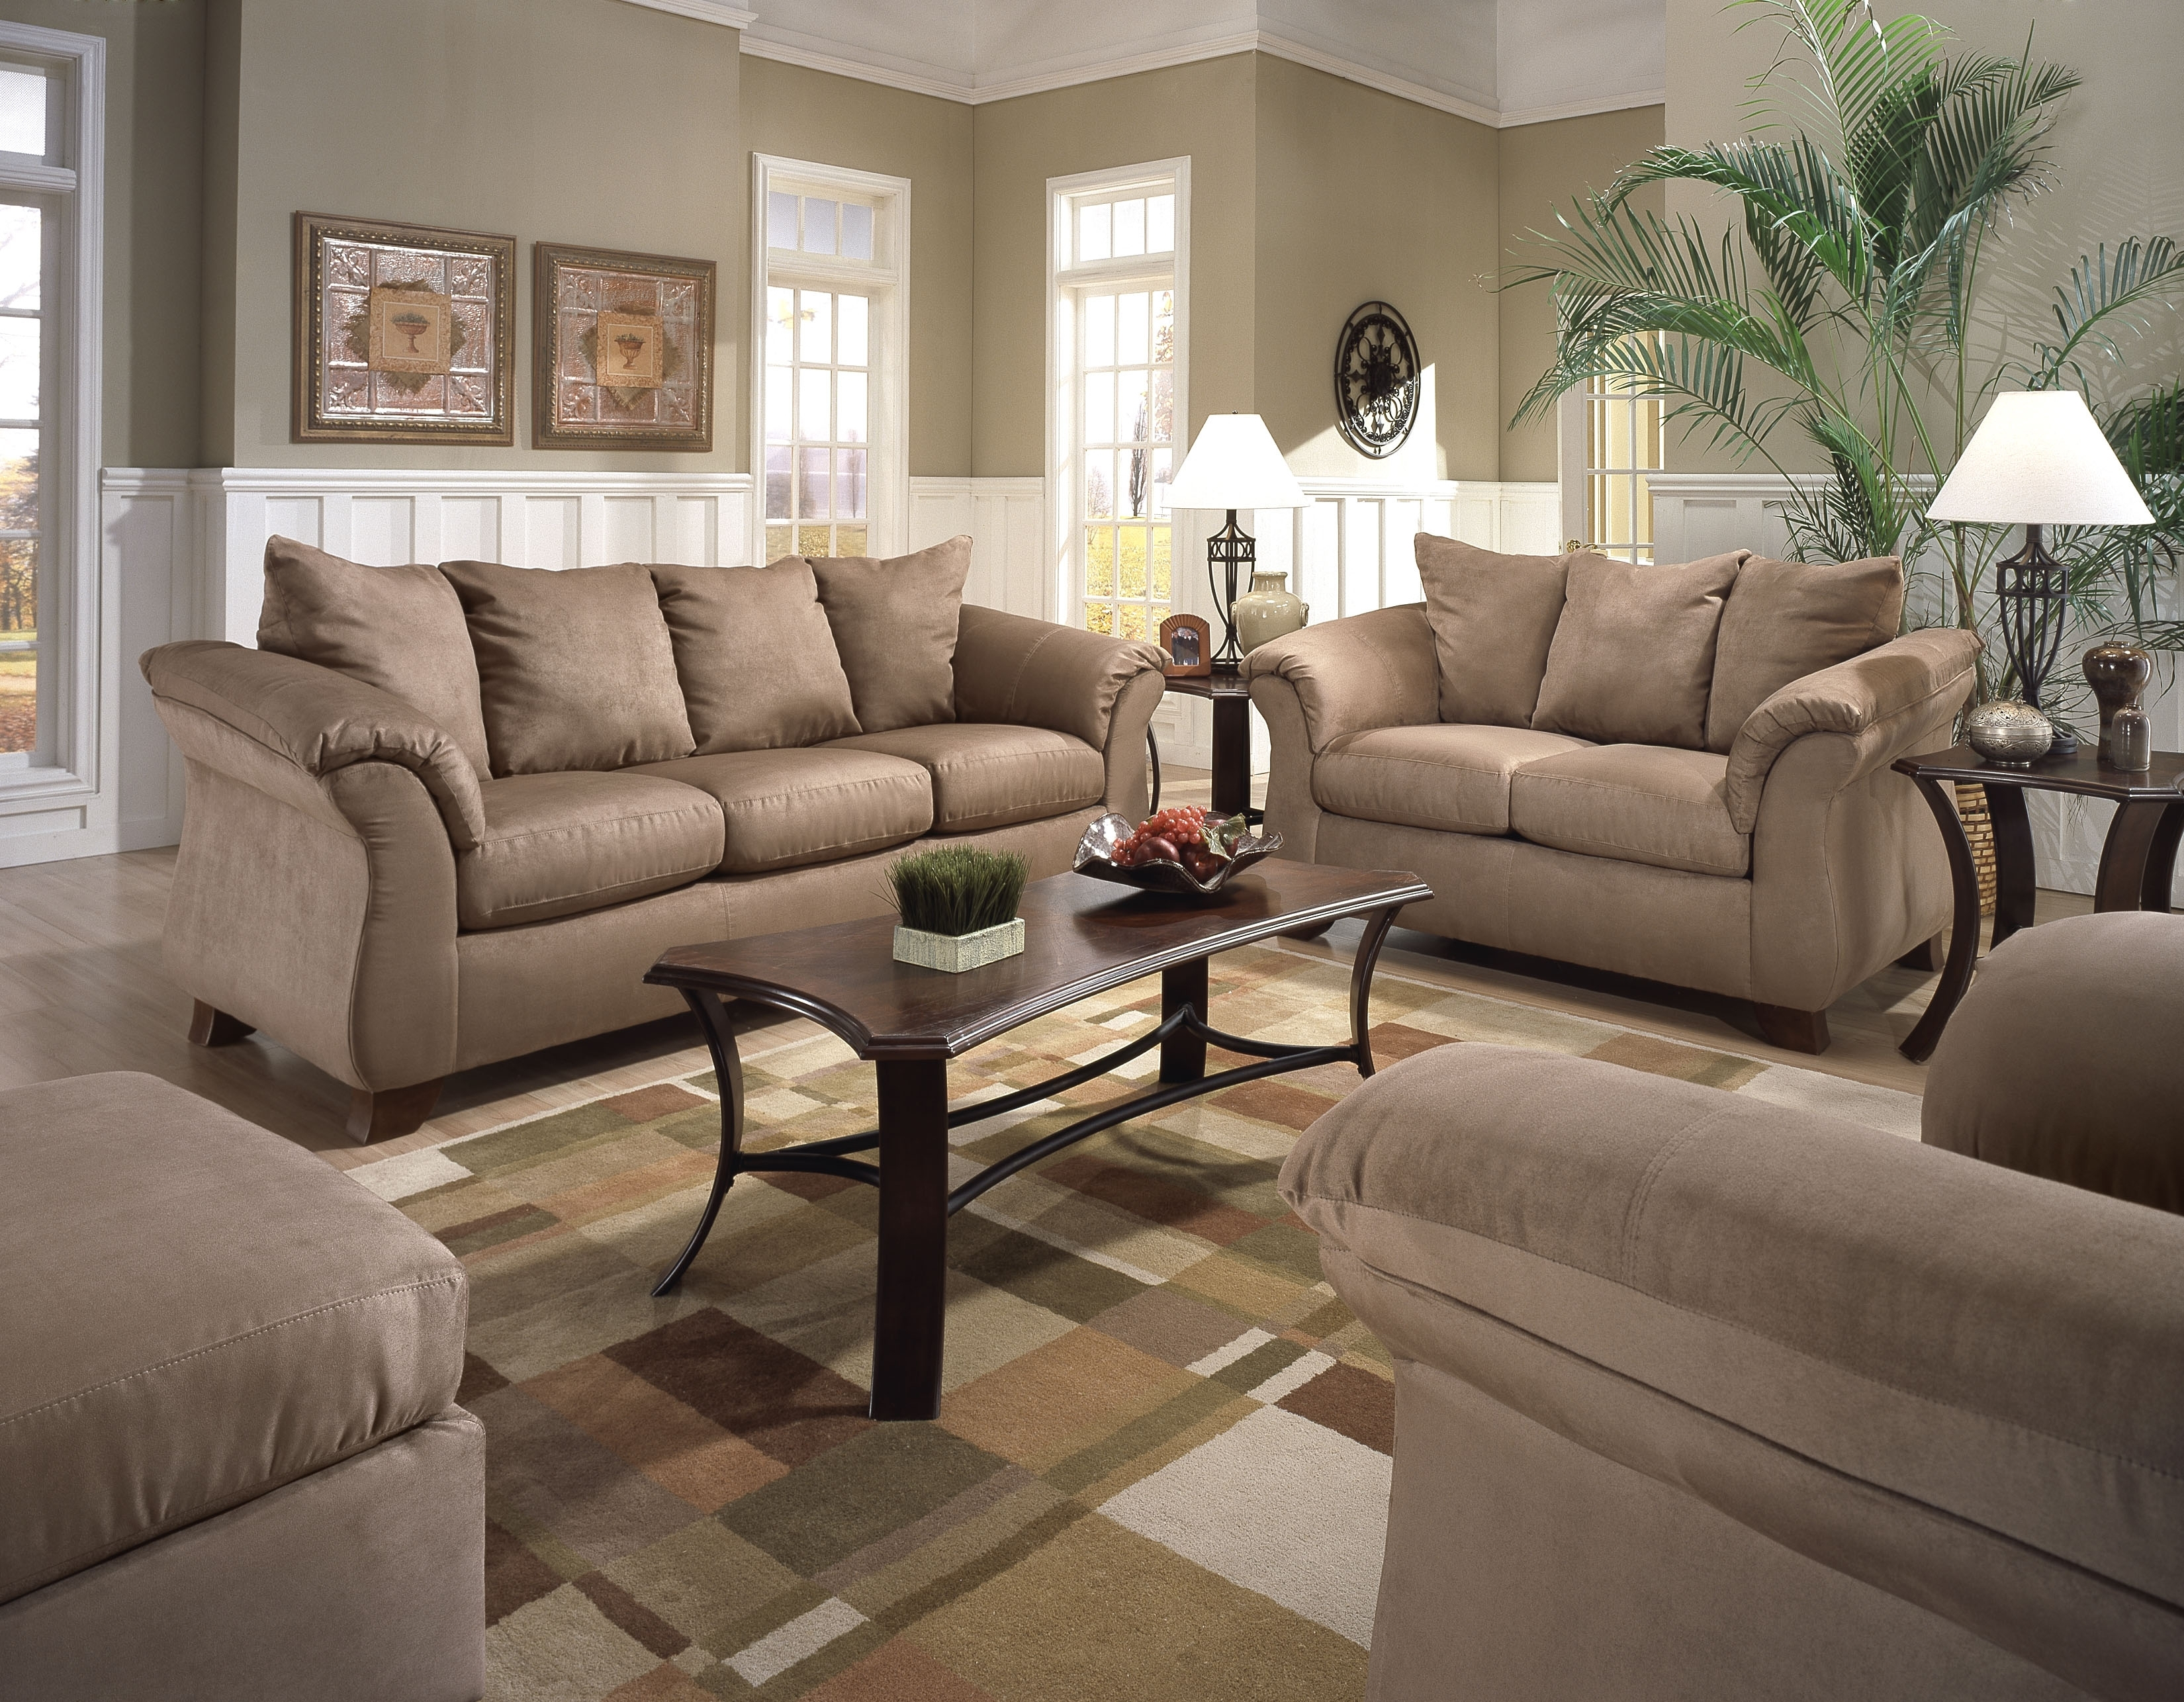 Current Elegant Sofas And Chairs With Regard To Best Sofa Deals Elegant Sofas Living Room Furniture Chairs Living (View 11 of 15)